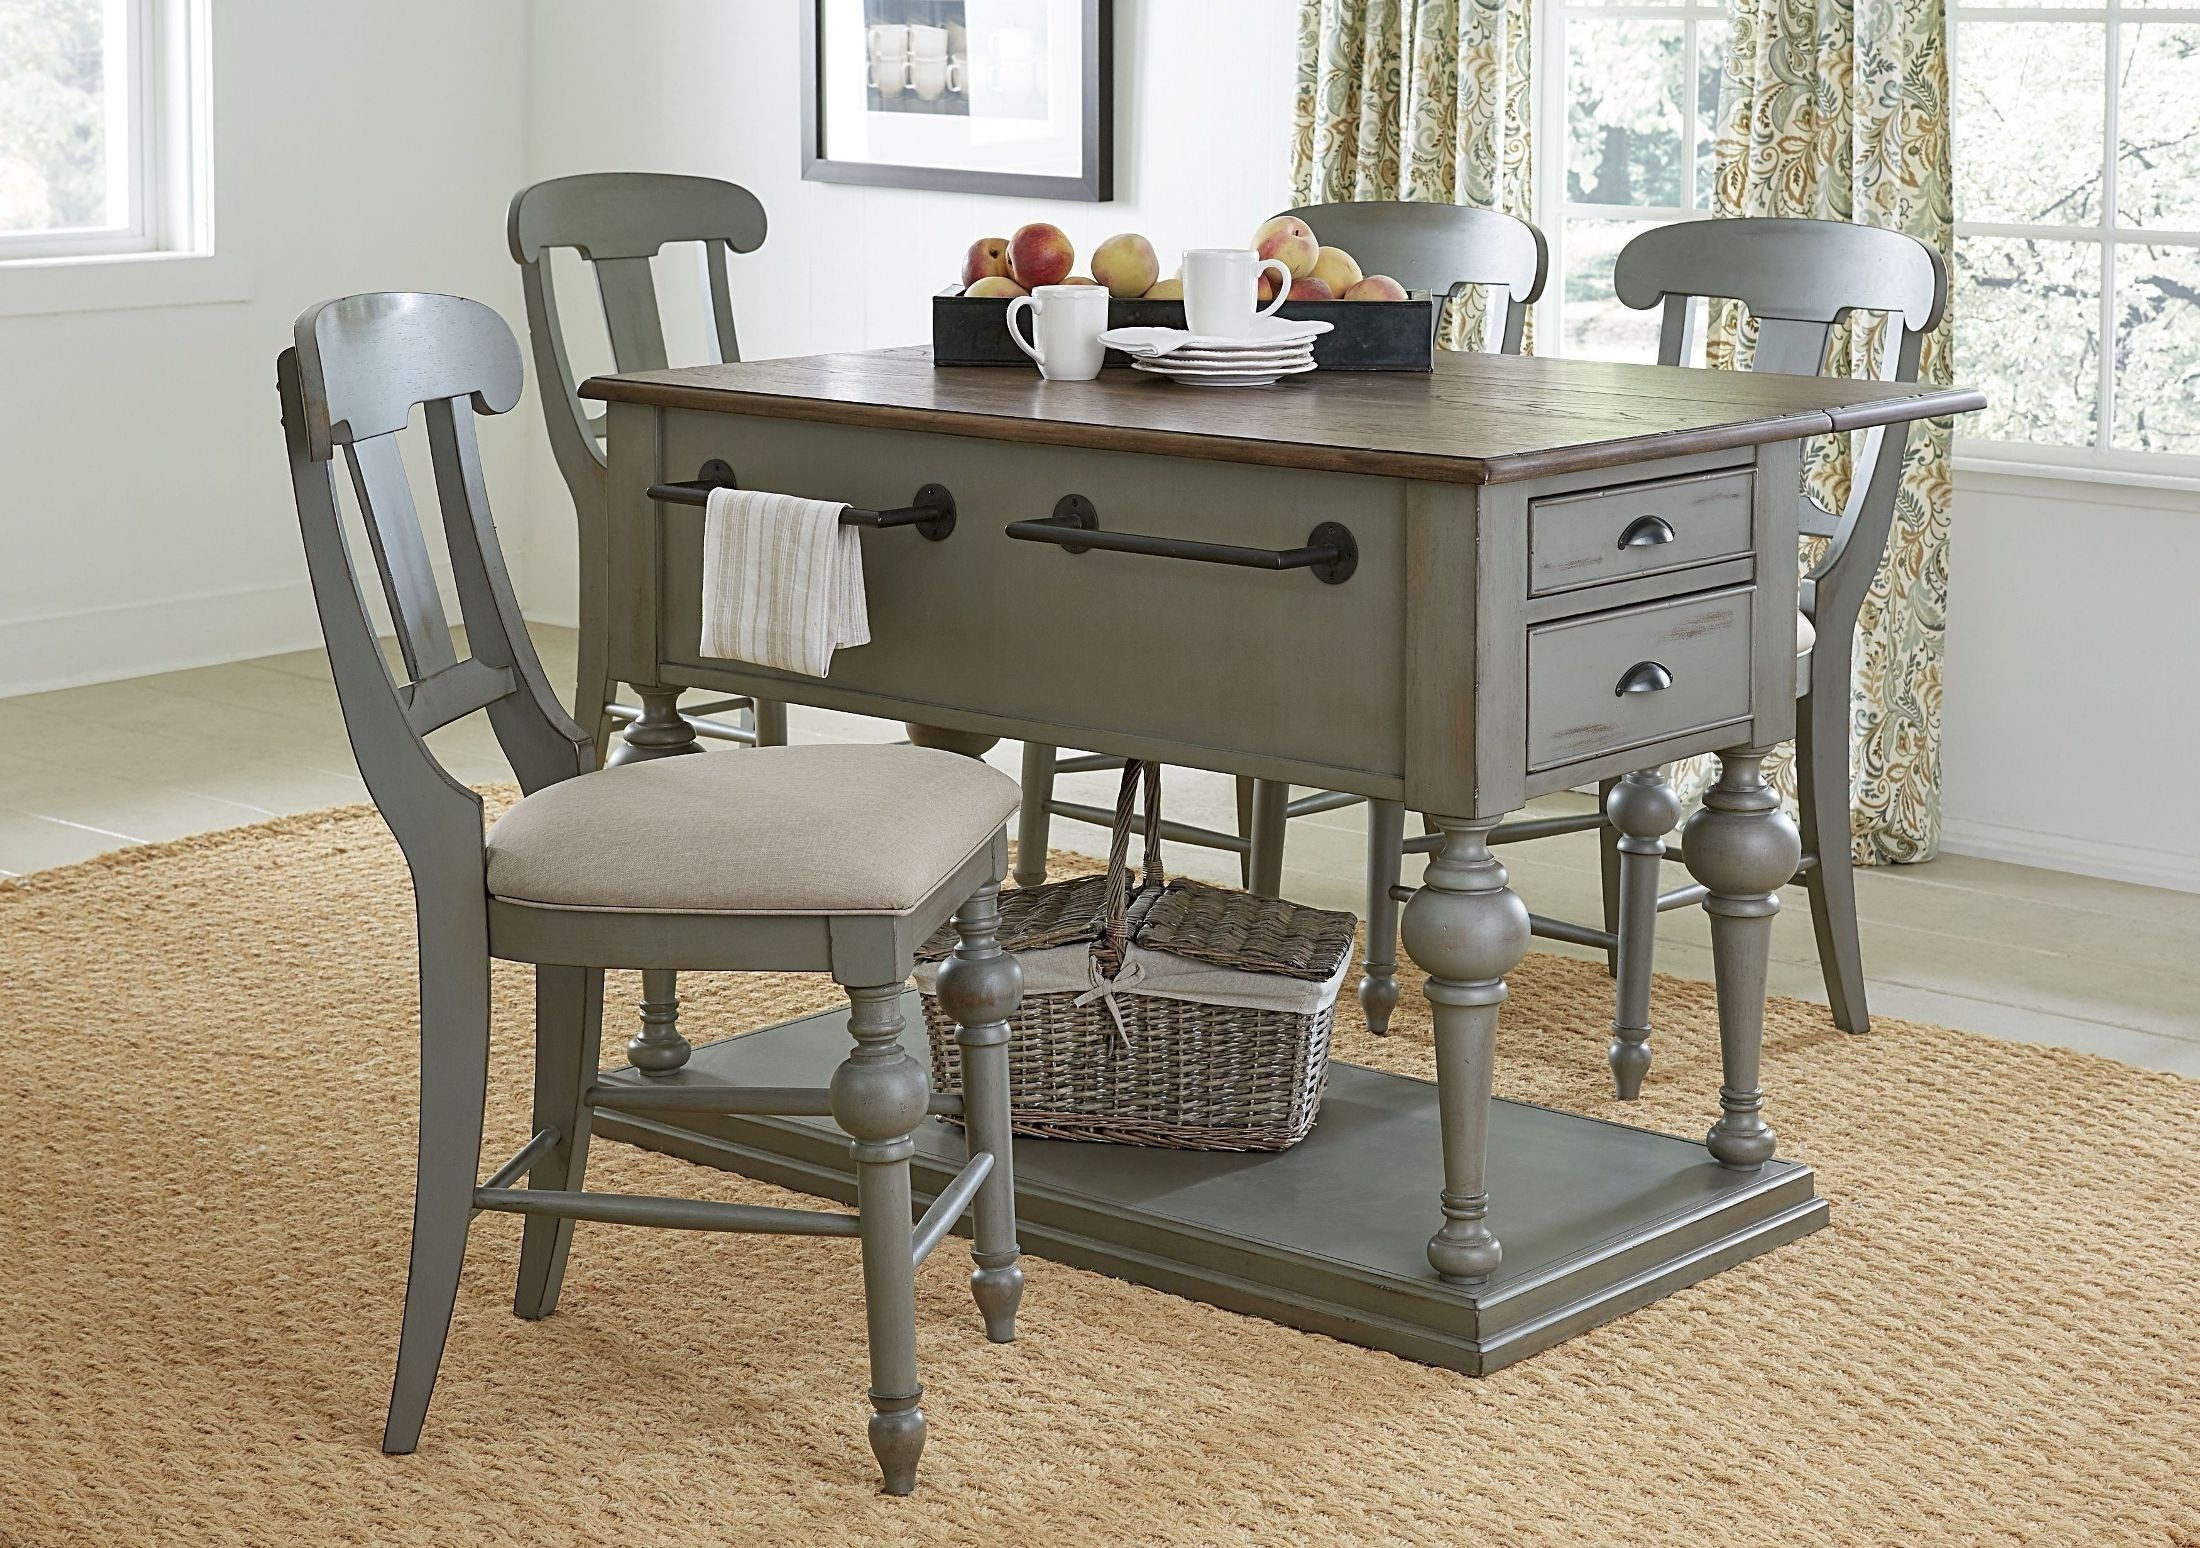 kitchen console kitchens on finance bad credit drop leaf island table ideas foter gray manufactured oak wood